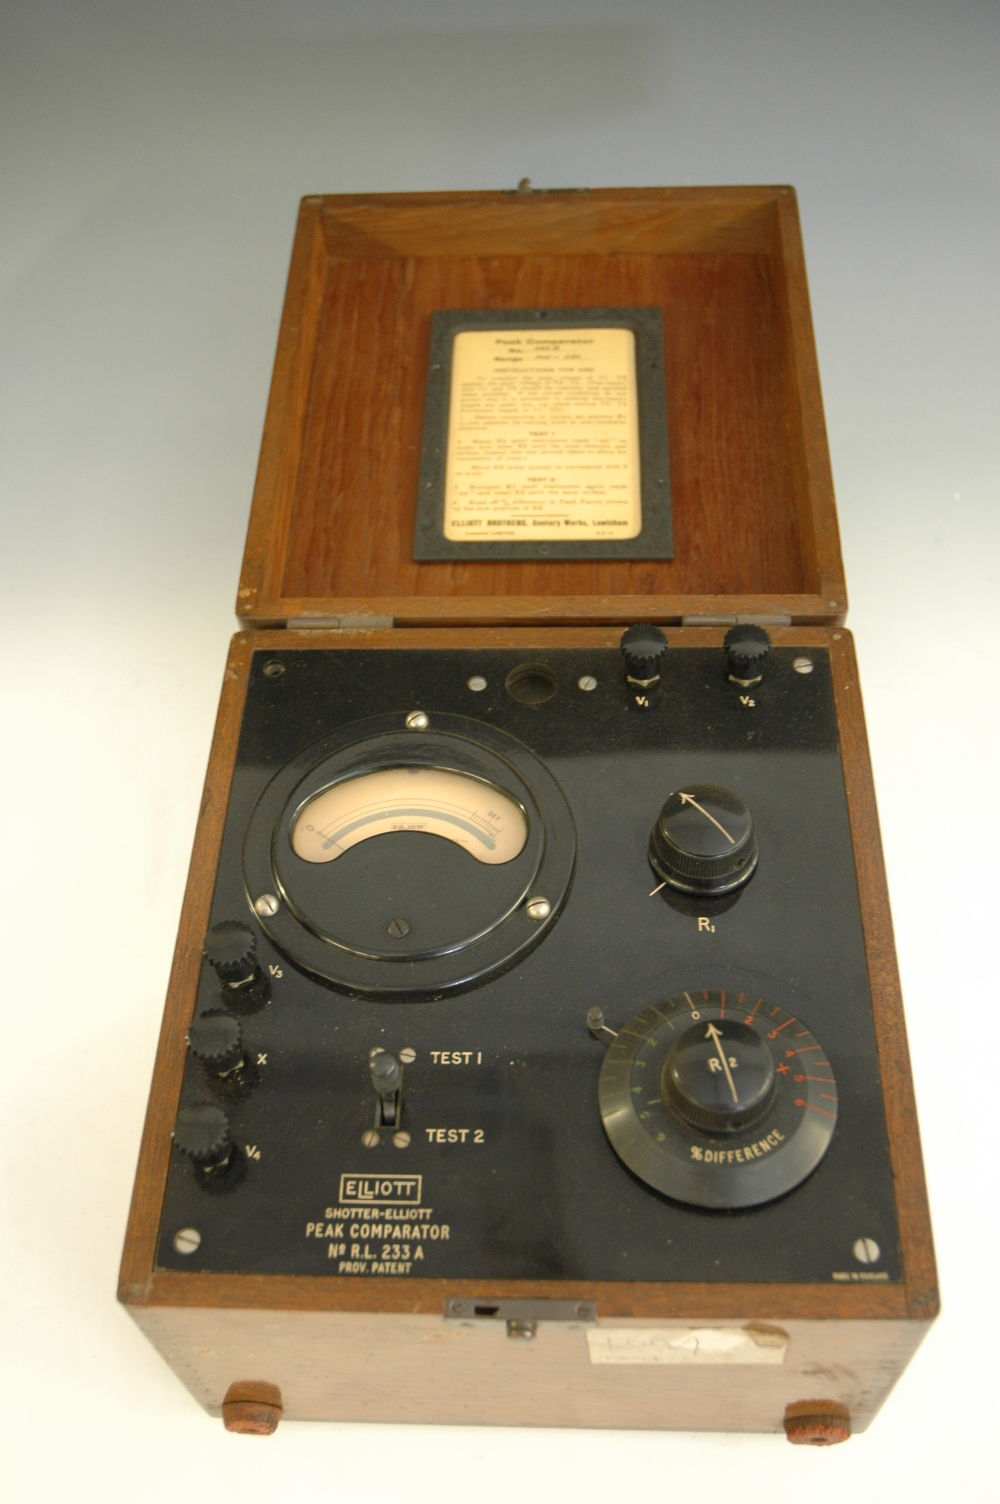 preview image for Shotter-Elliott Peak Comparator, by Elliott Brothers (London) Ltd, Mid 20th Century